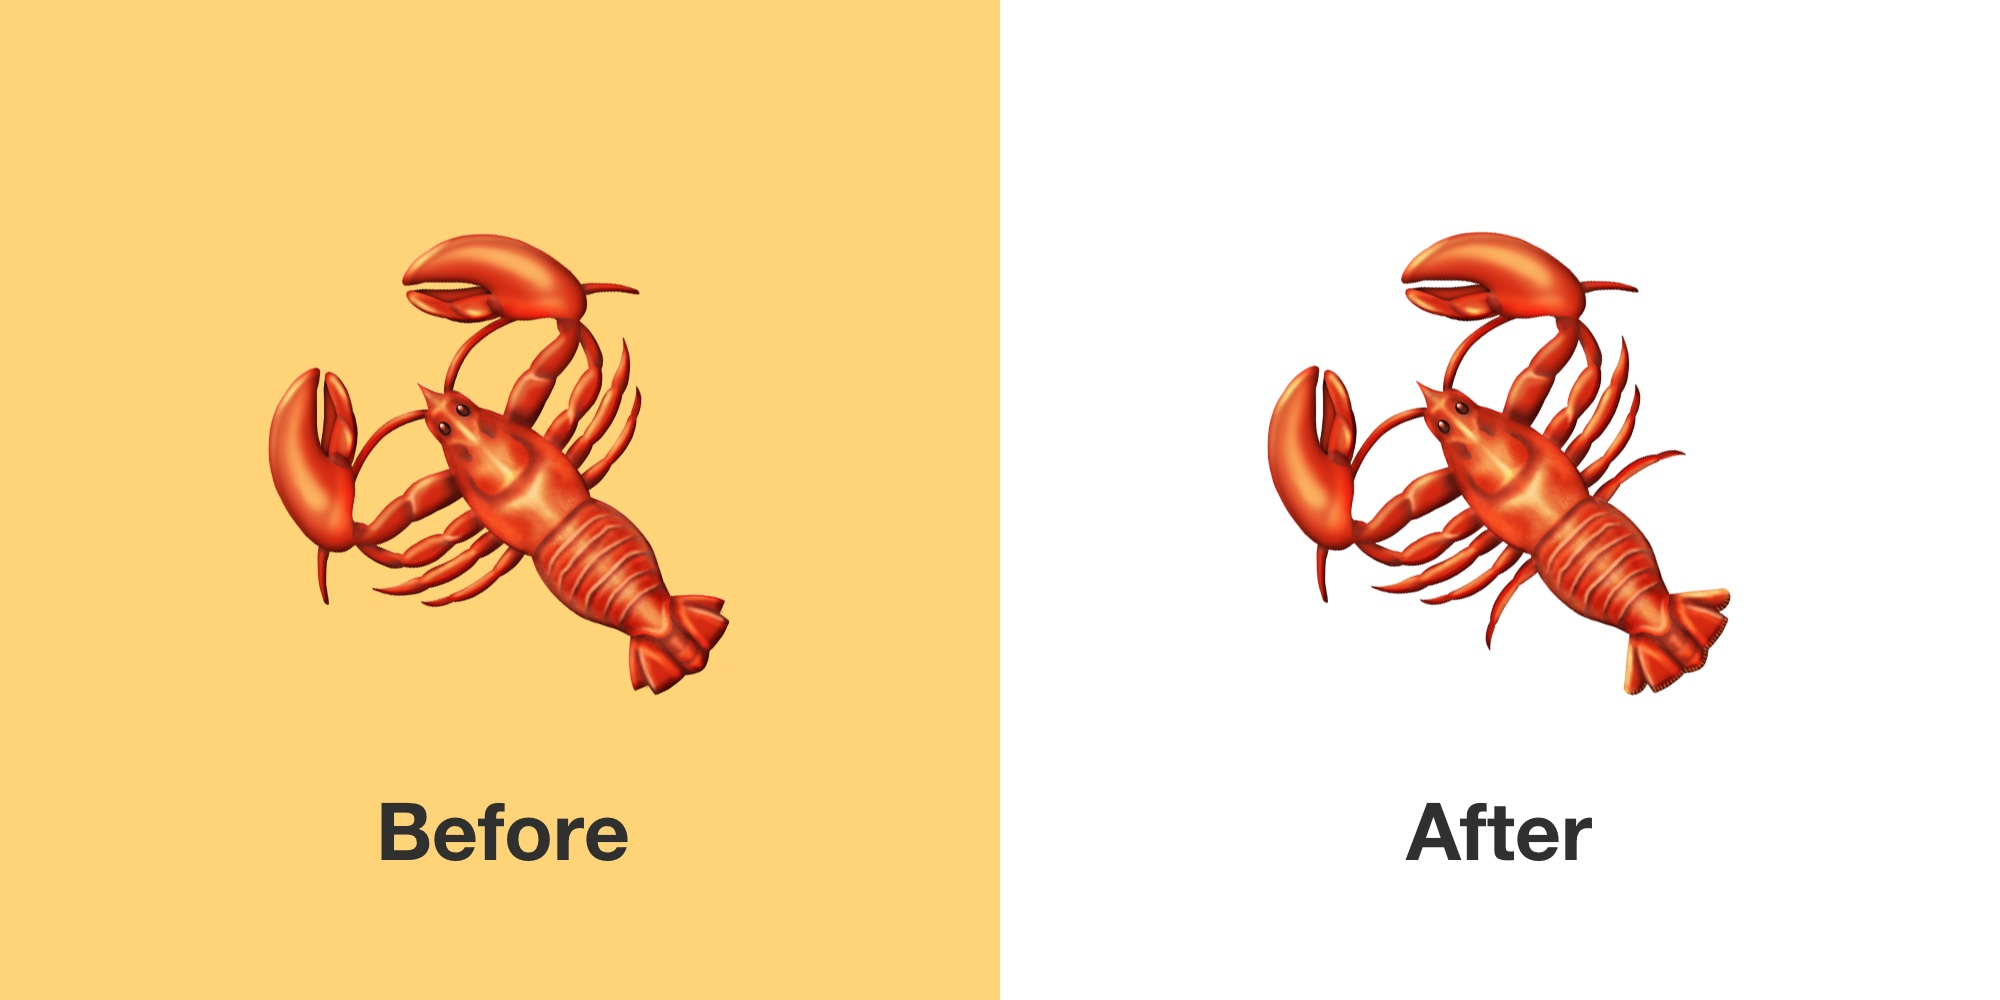 lobster-emoji-emojipedia-before-after